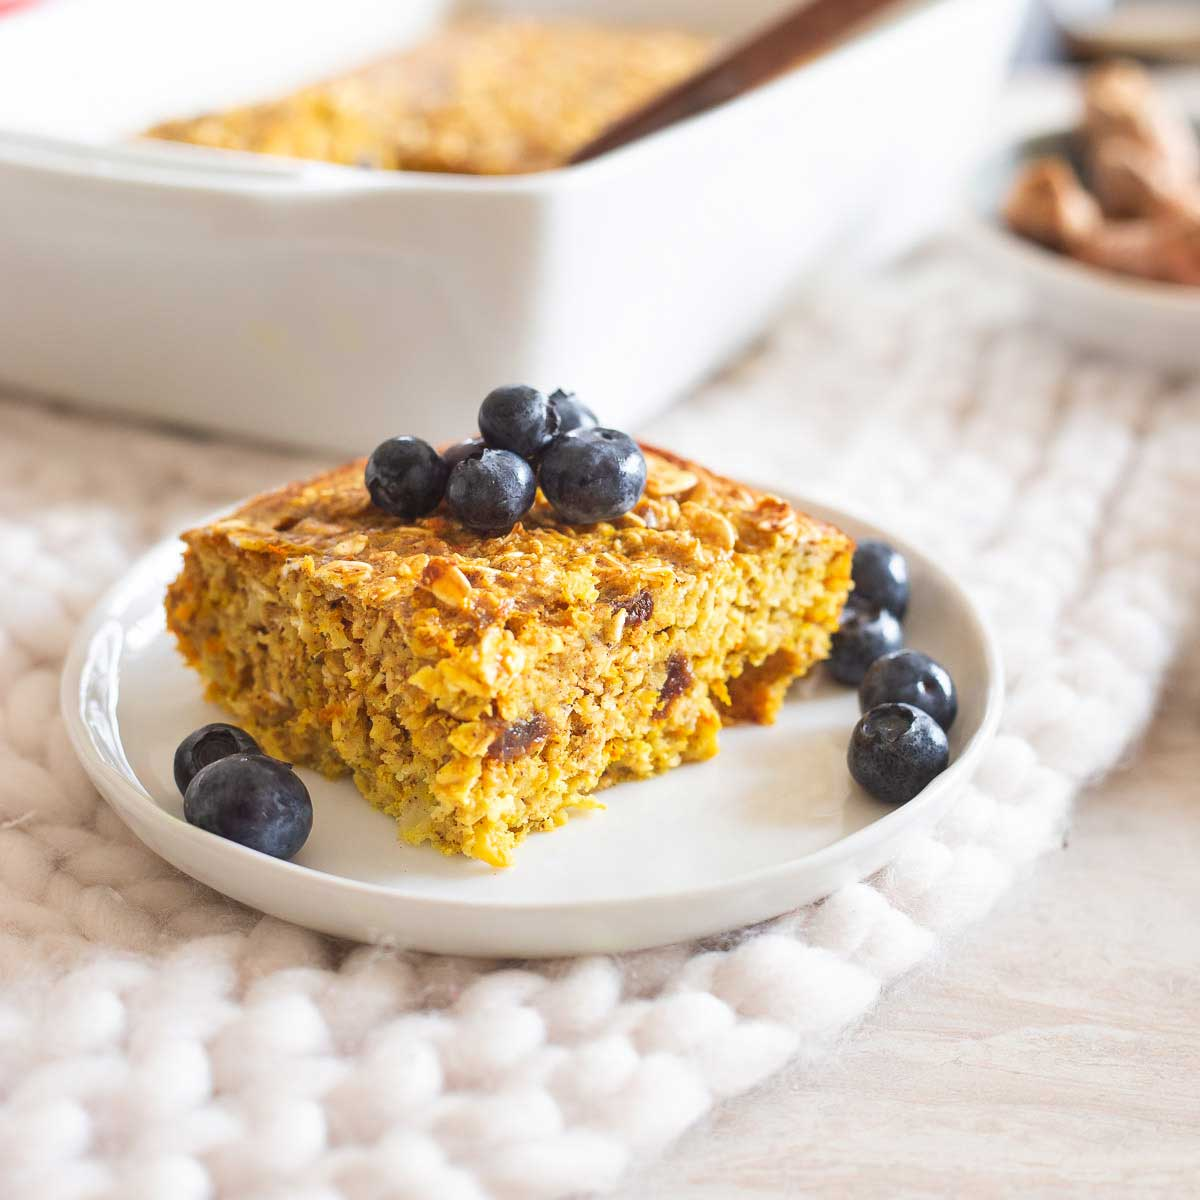 Try this turmeric baked oatmeal for an easy make-ahead breakfast packed with nutritious and hearty oats and fresh turmeric.